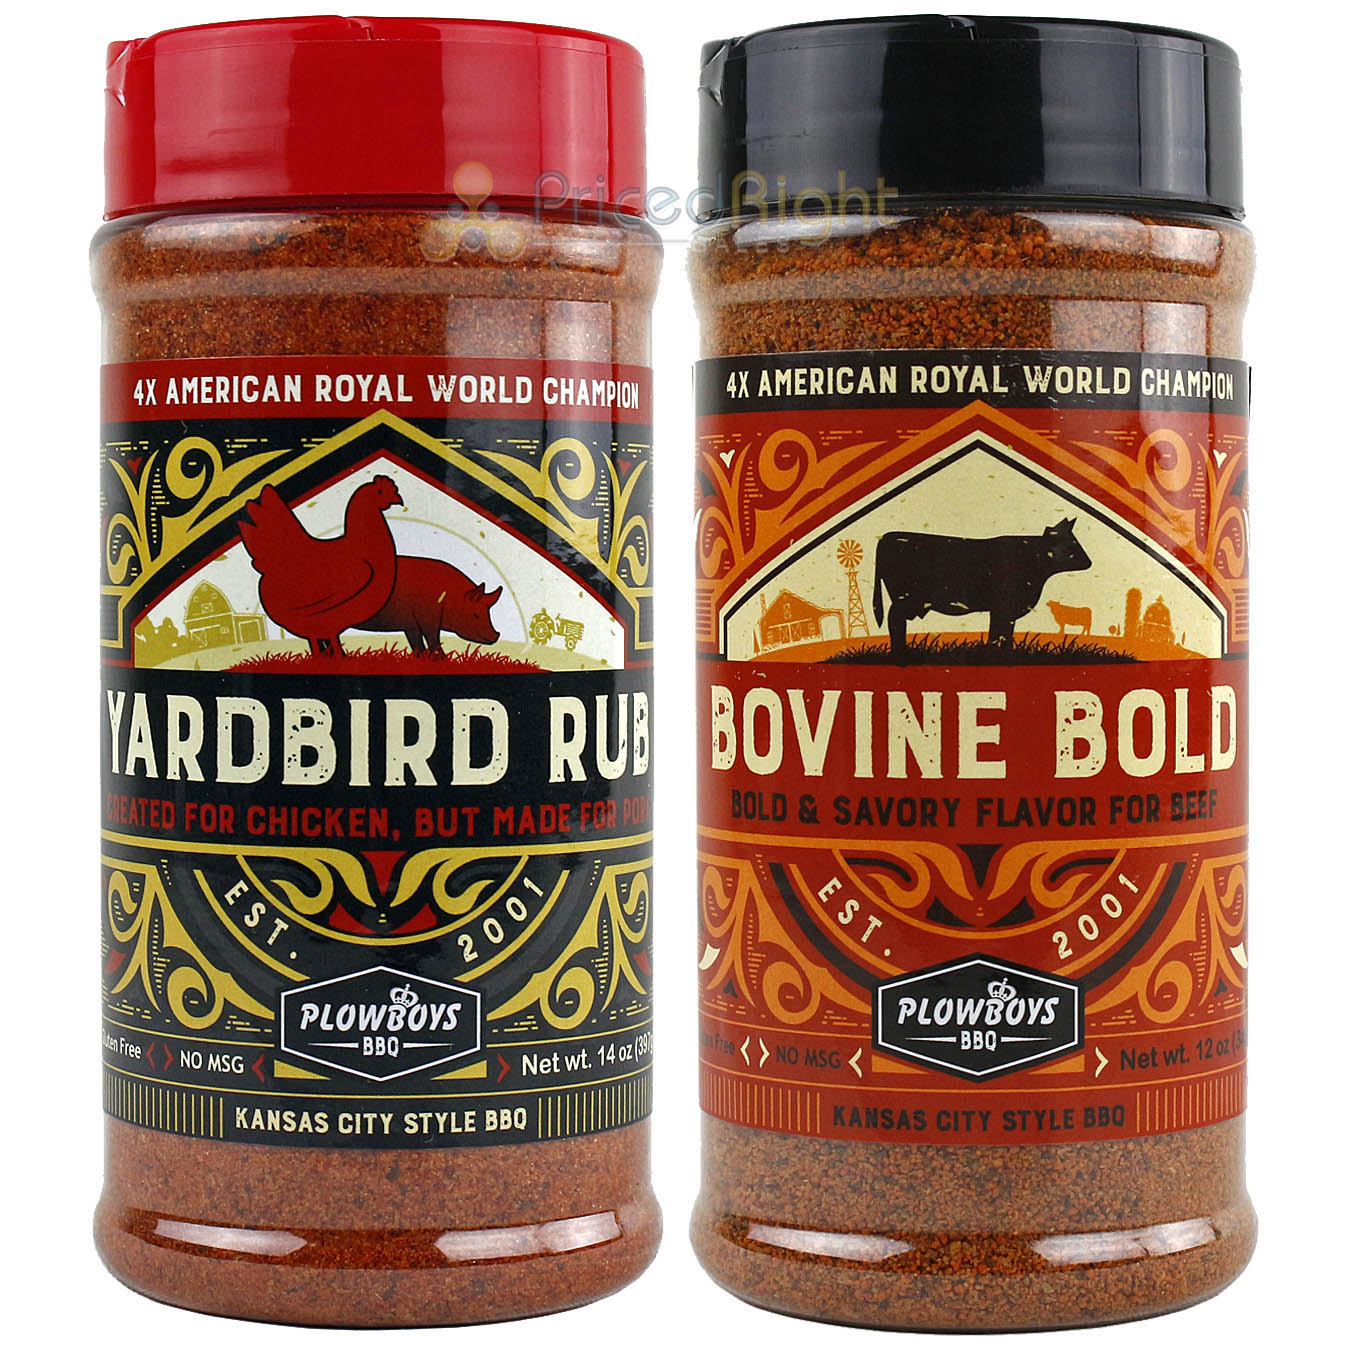 Plowboys BBQ Bovine Bold & Yardbird Seasoning Rub Award Winning Barbeque Rub